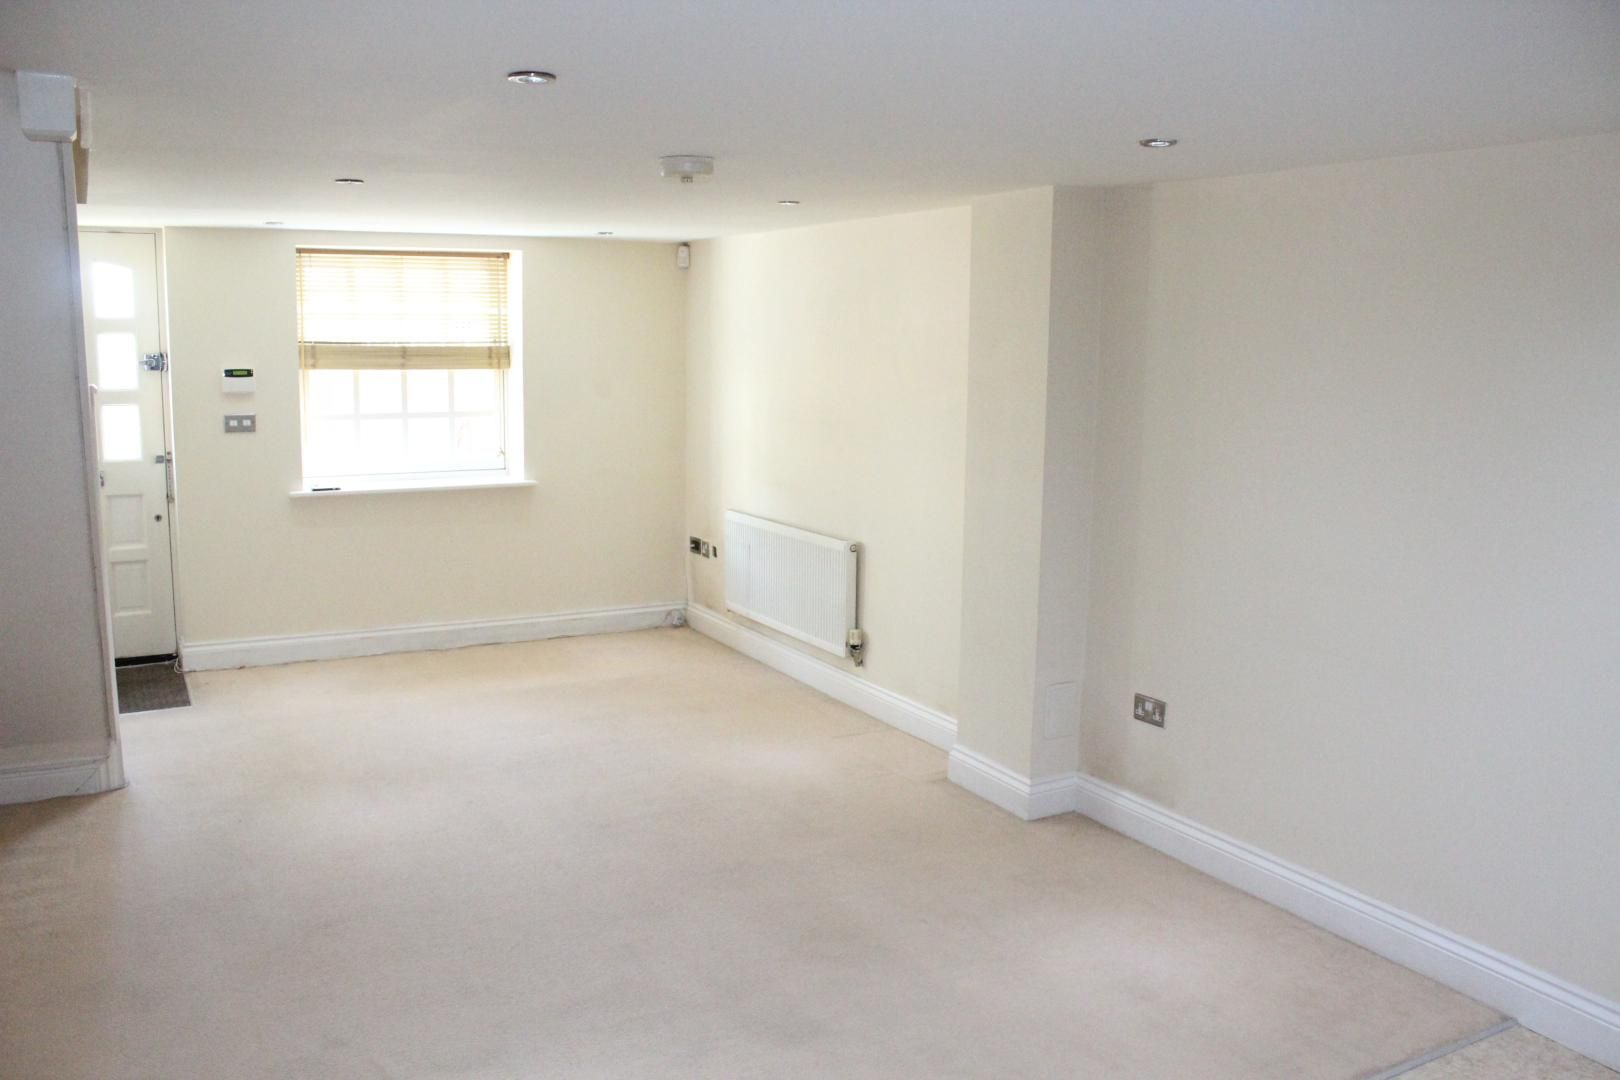 2 bed flat to rent in Maidstone Road, ME1